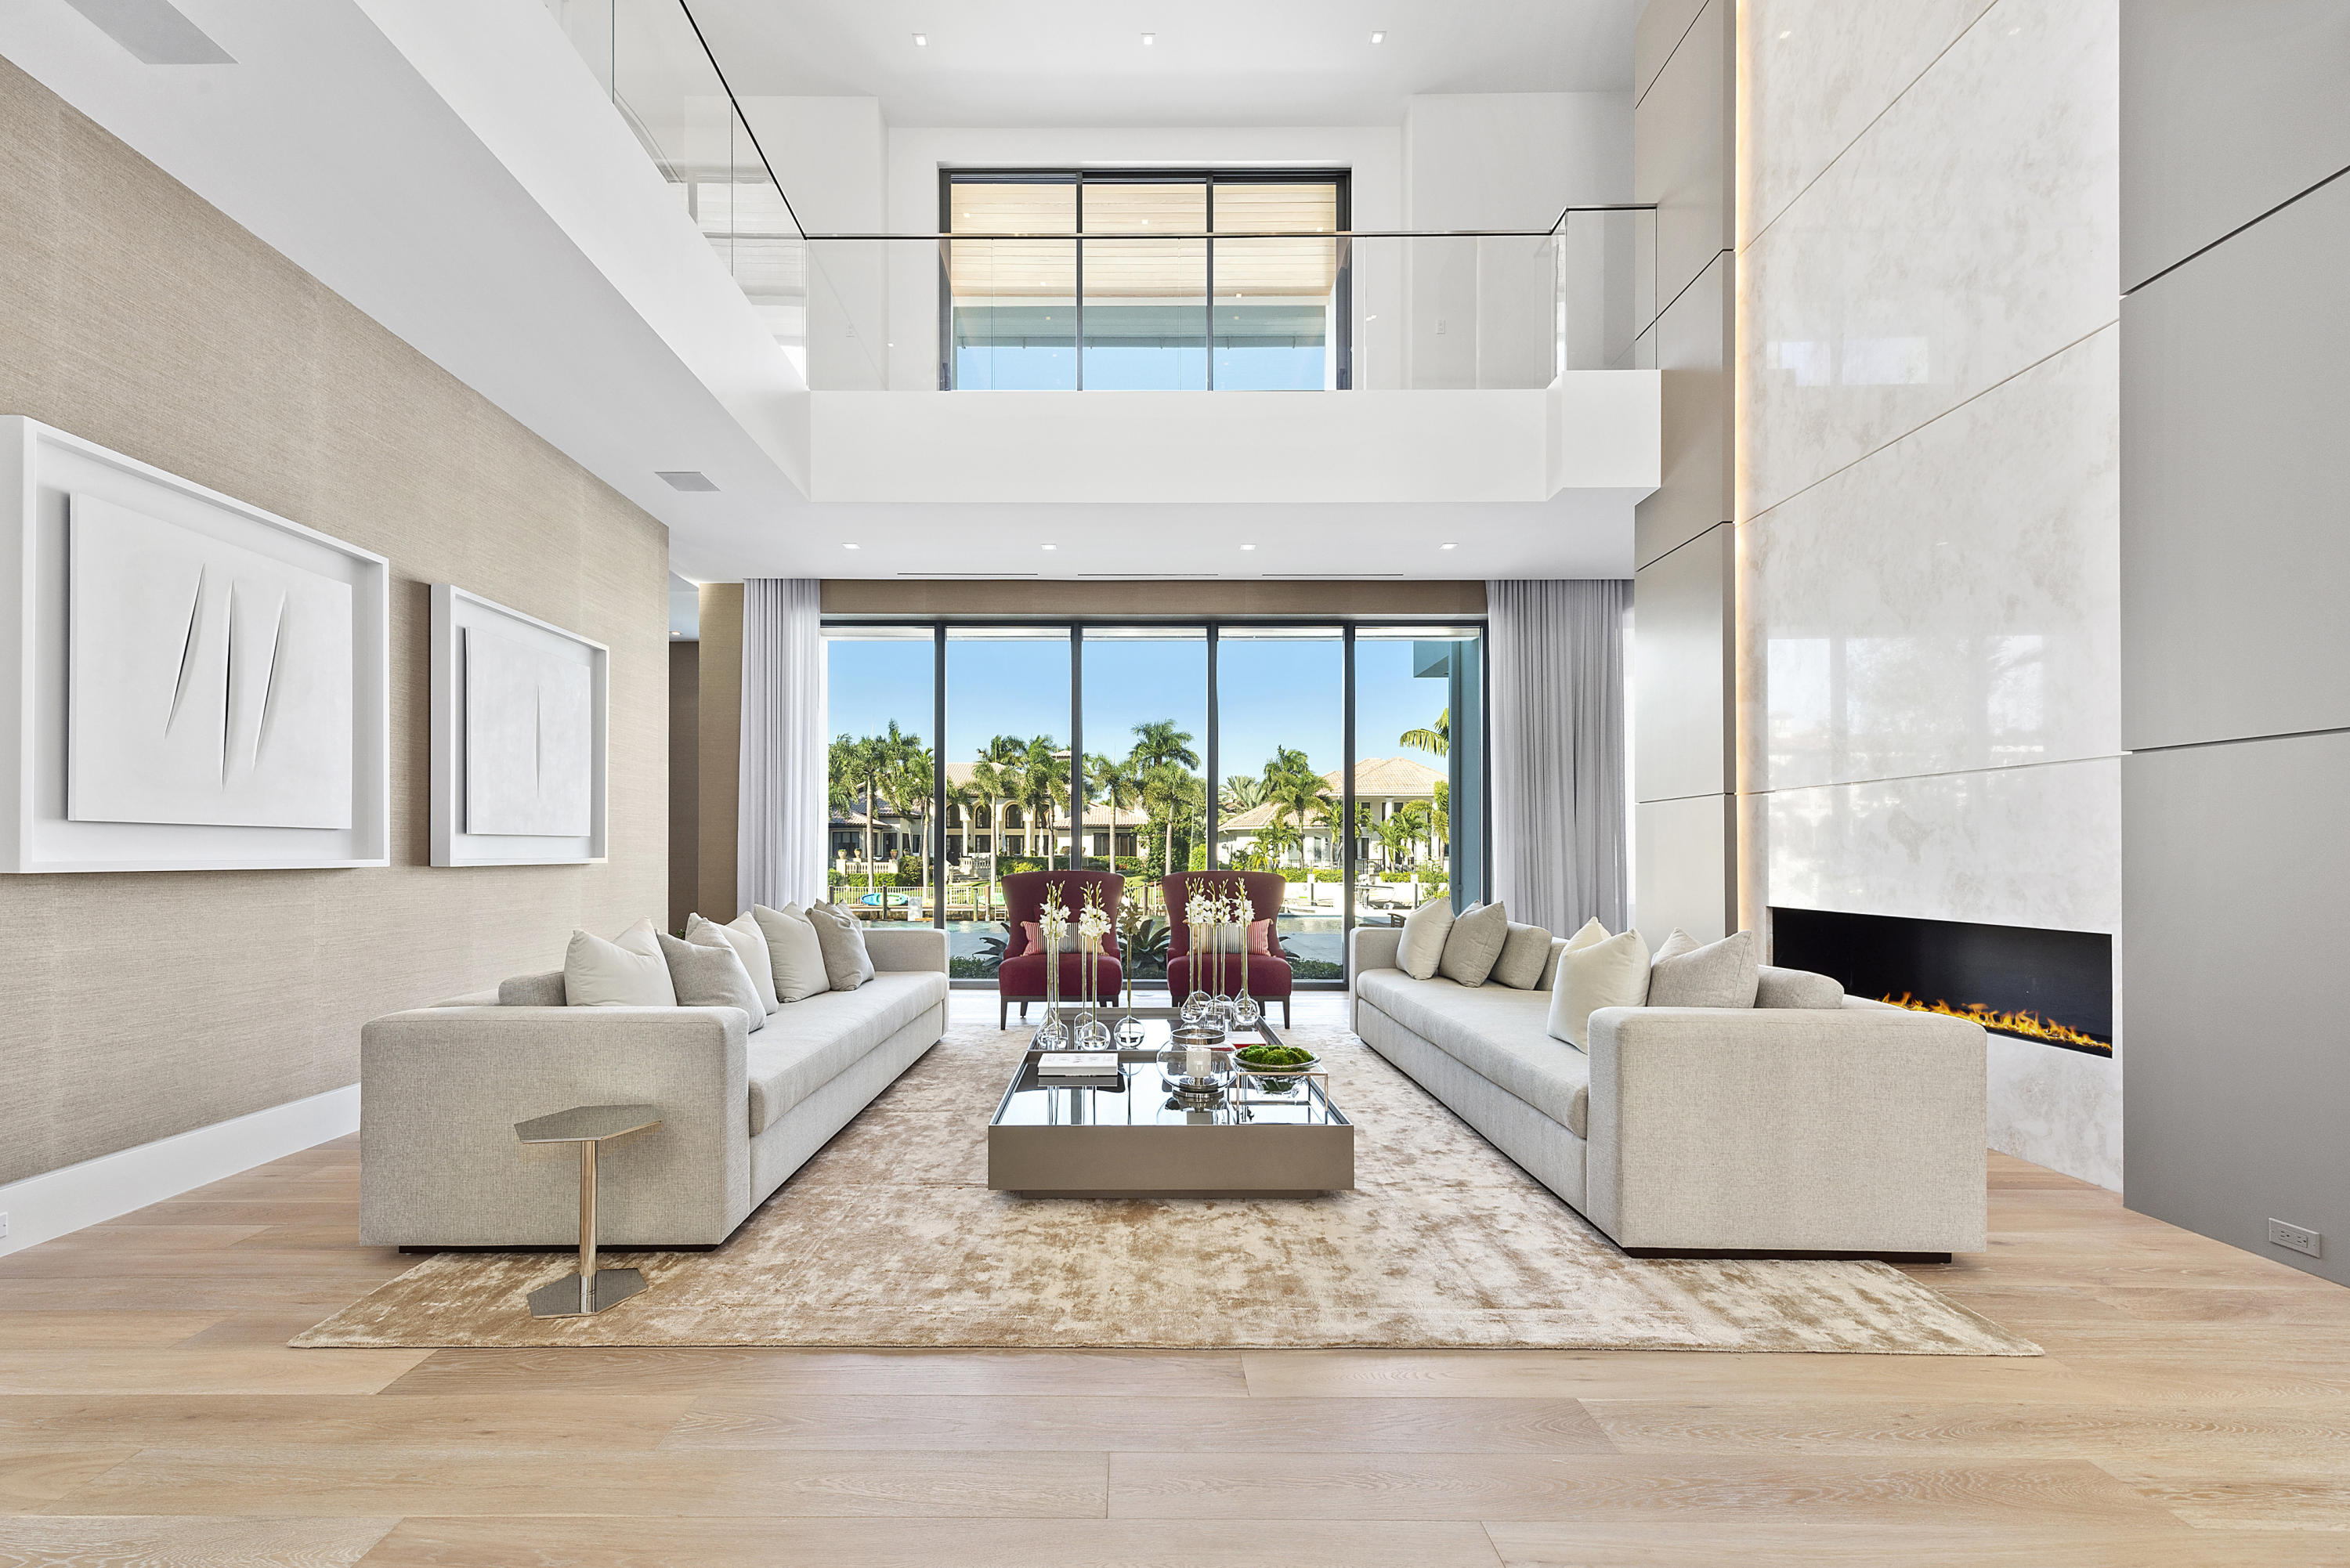 249 Alexander Palm Road, Boca Raton, Florida 33432, 6 Bedrooms Bedrooms, ,8.2 BathroomsBathrooms,Single Family,For Sale,ROYAL PALM YACHT & COUNTRY CLUB,Alexander Palm,RX-10490235